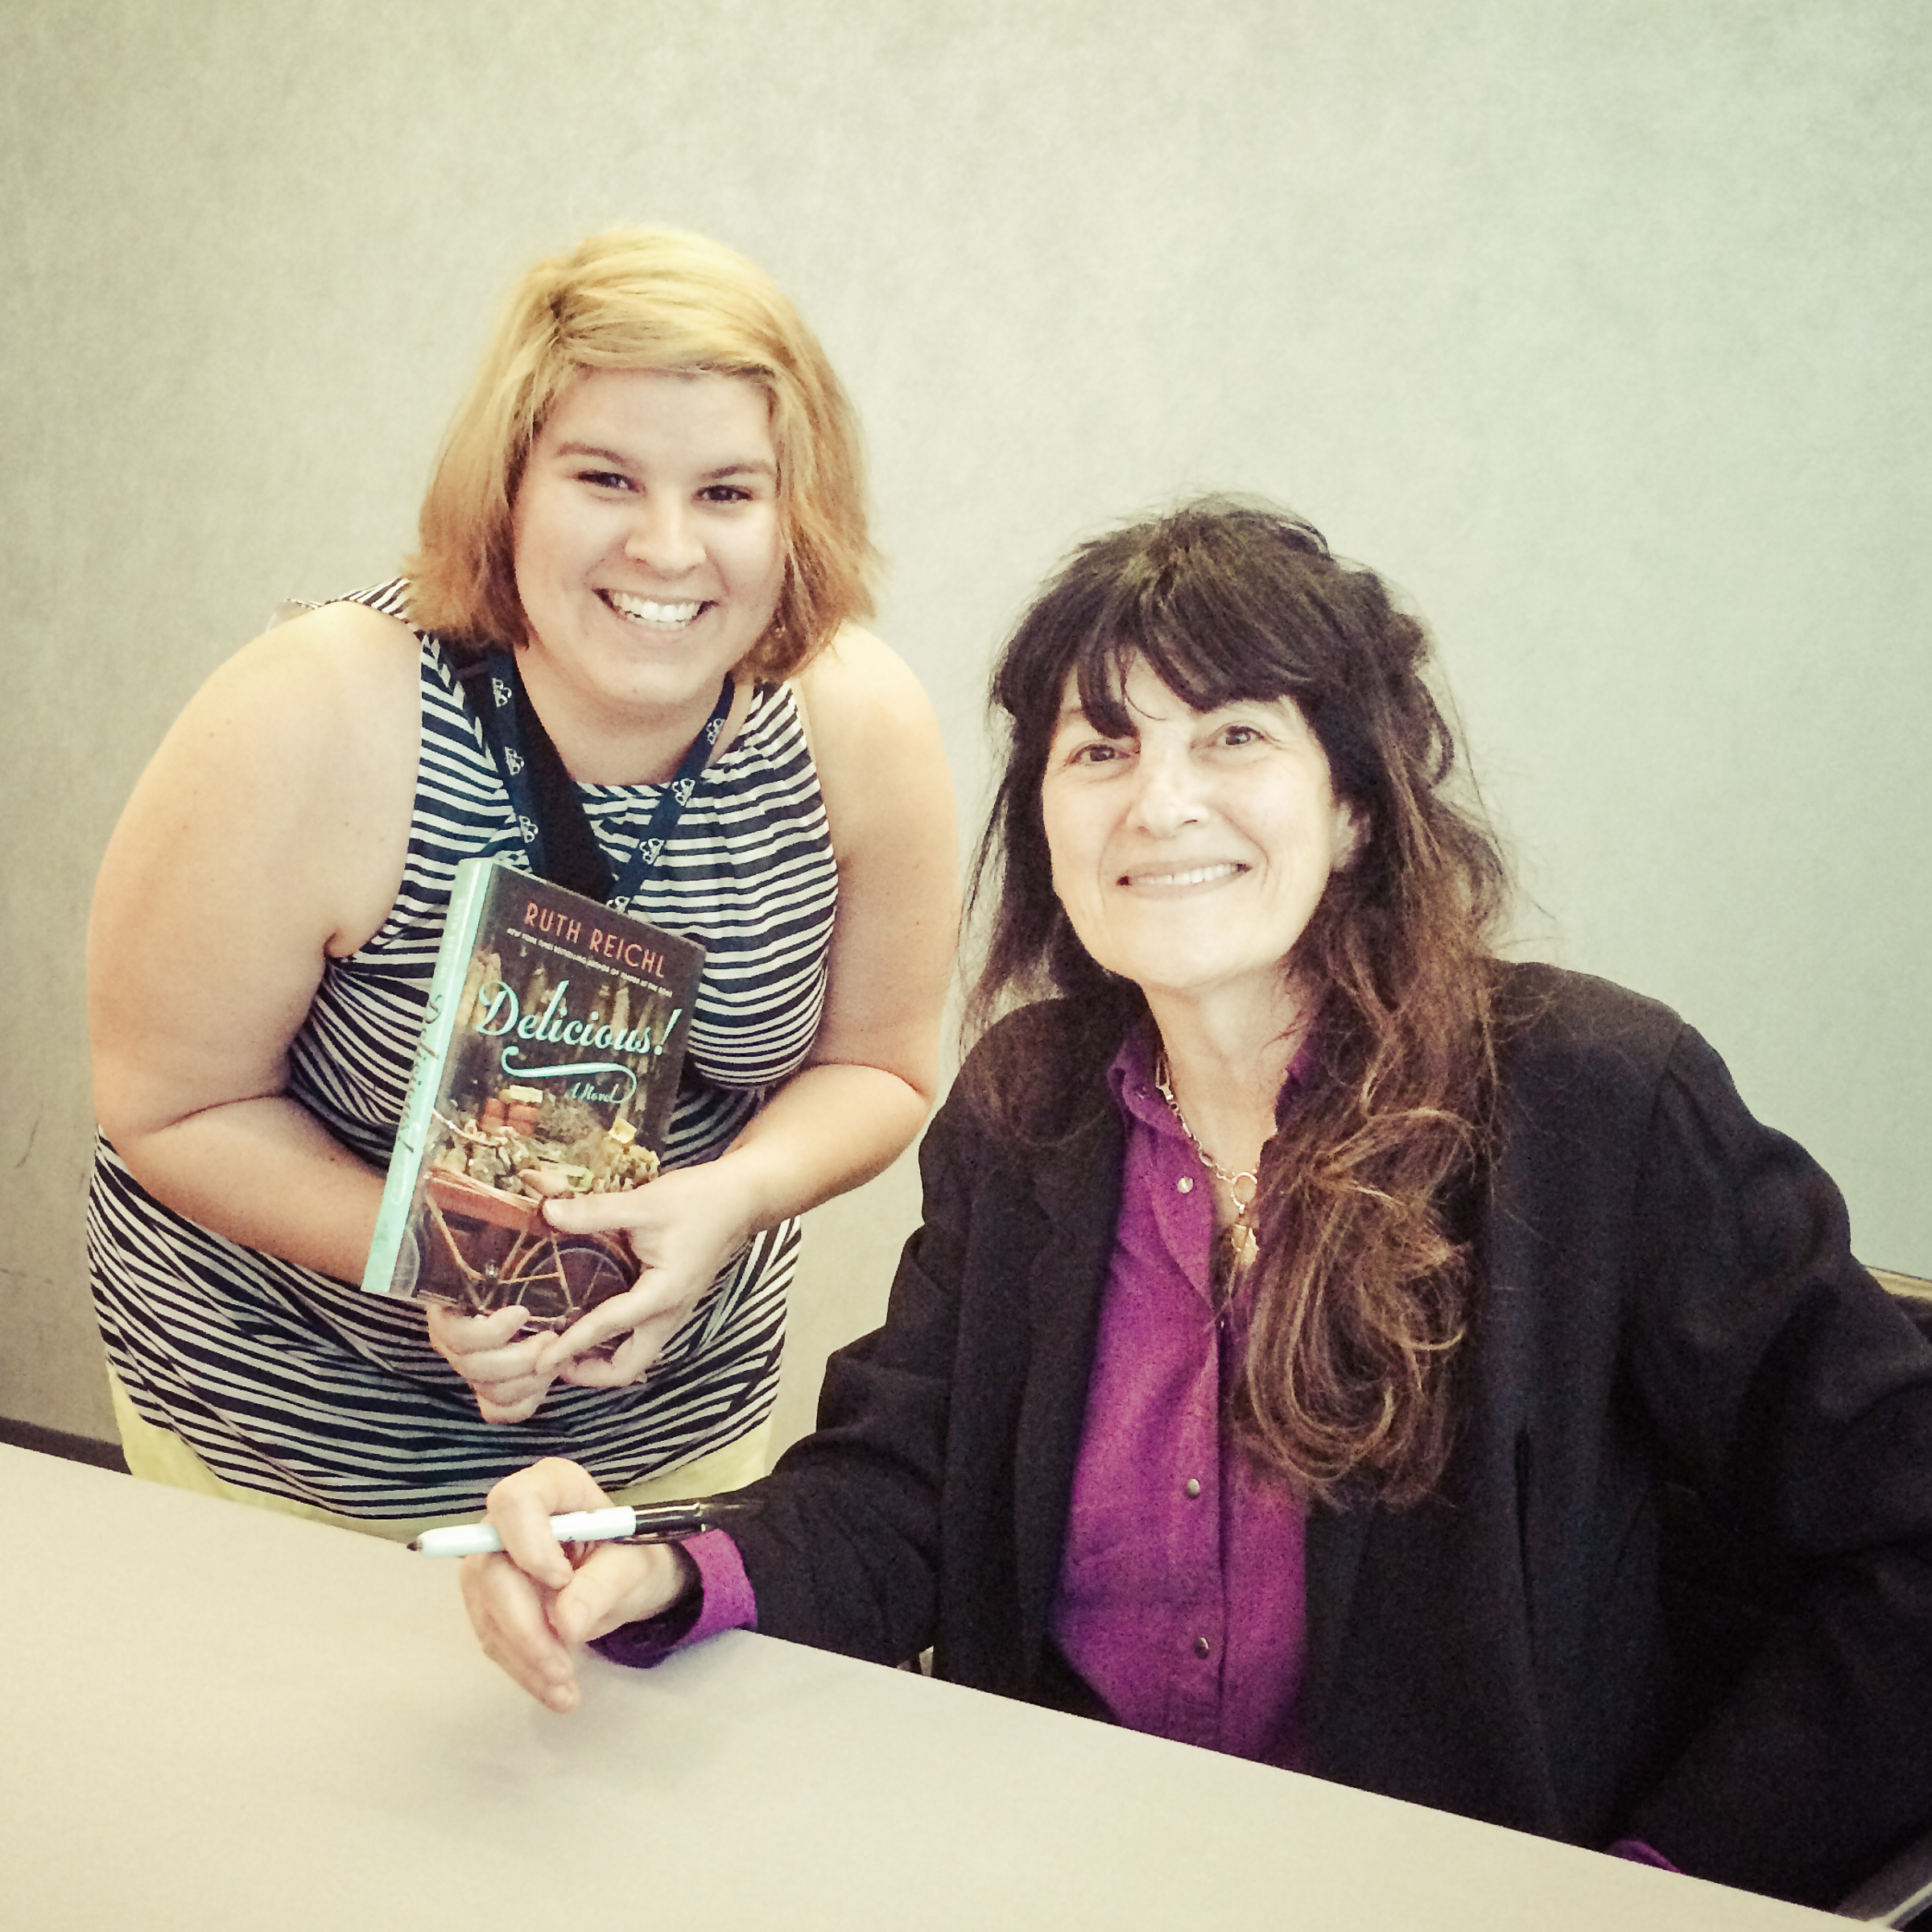 me and Ruth Reichl